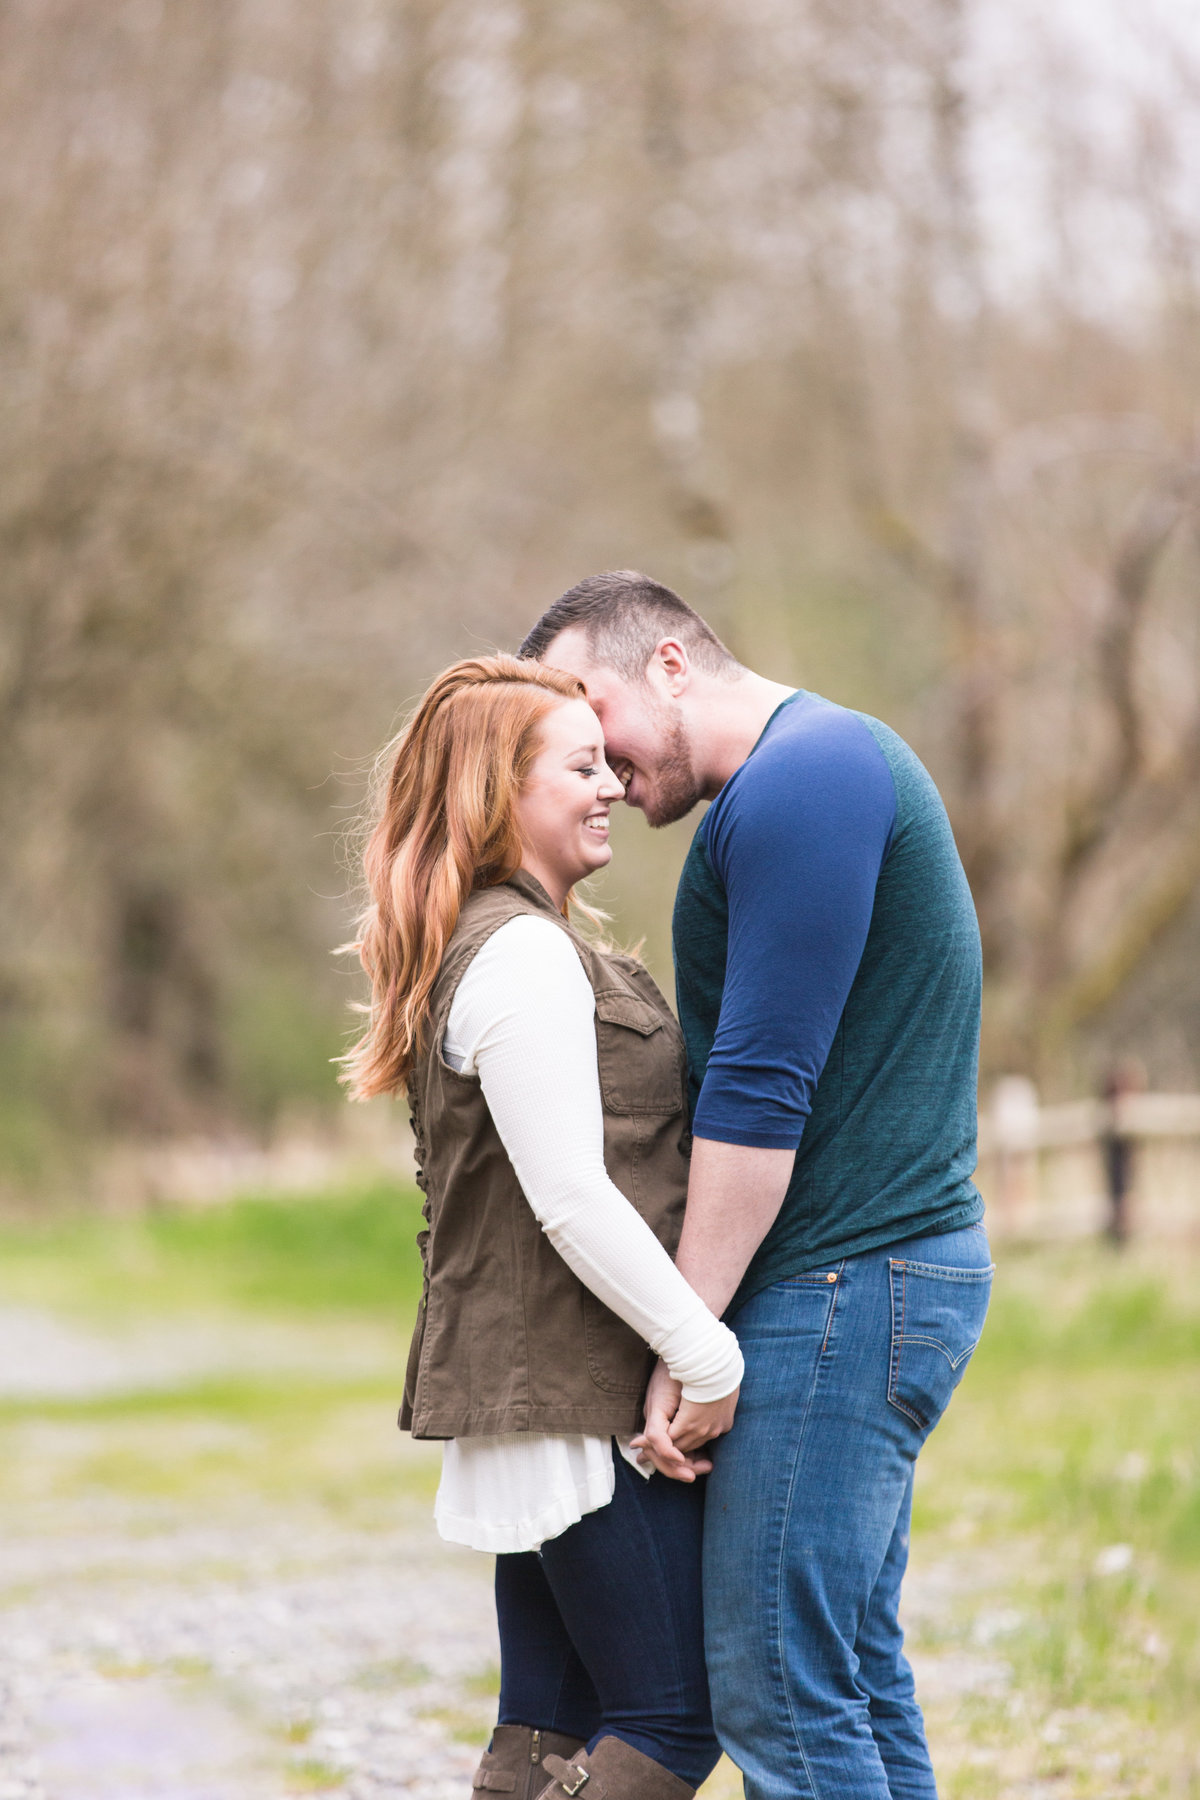 Becca-Joel-Engagement-Session-Eva-Rieb-Photography-123